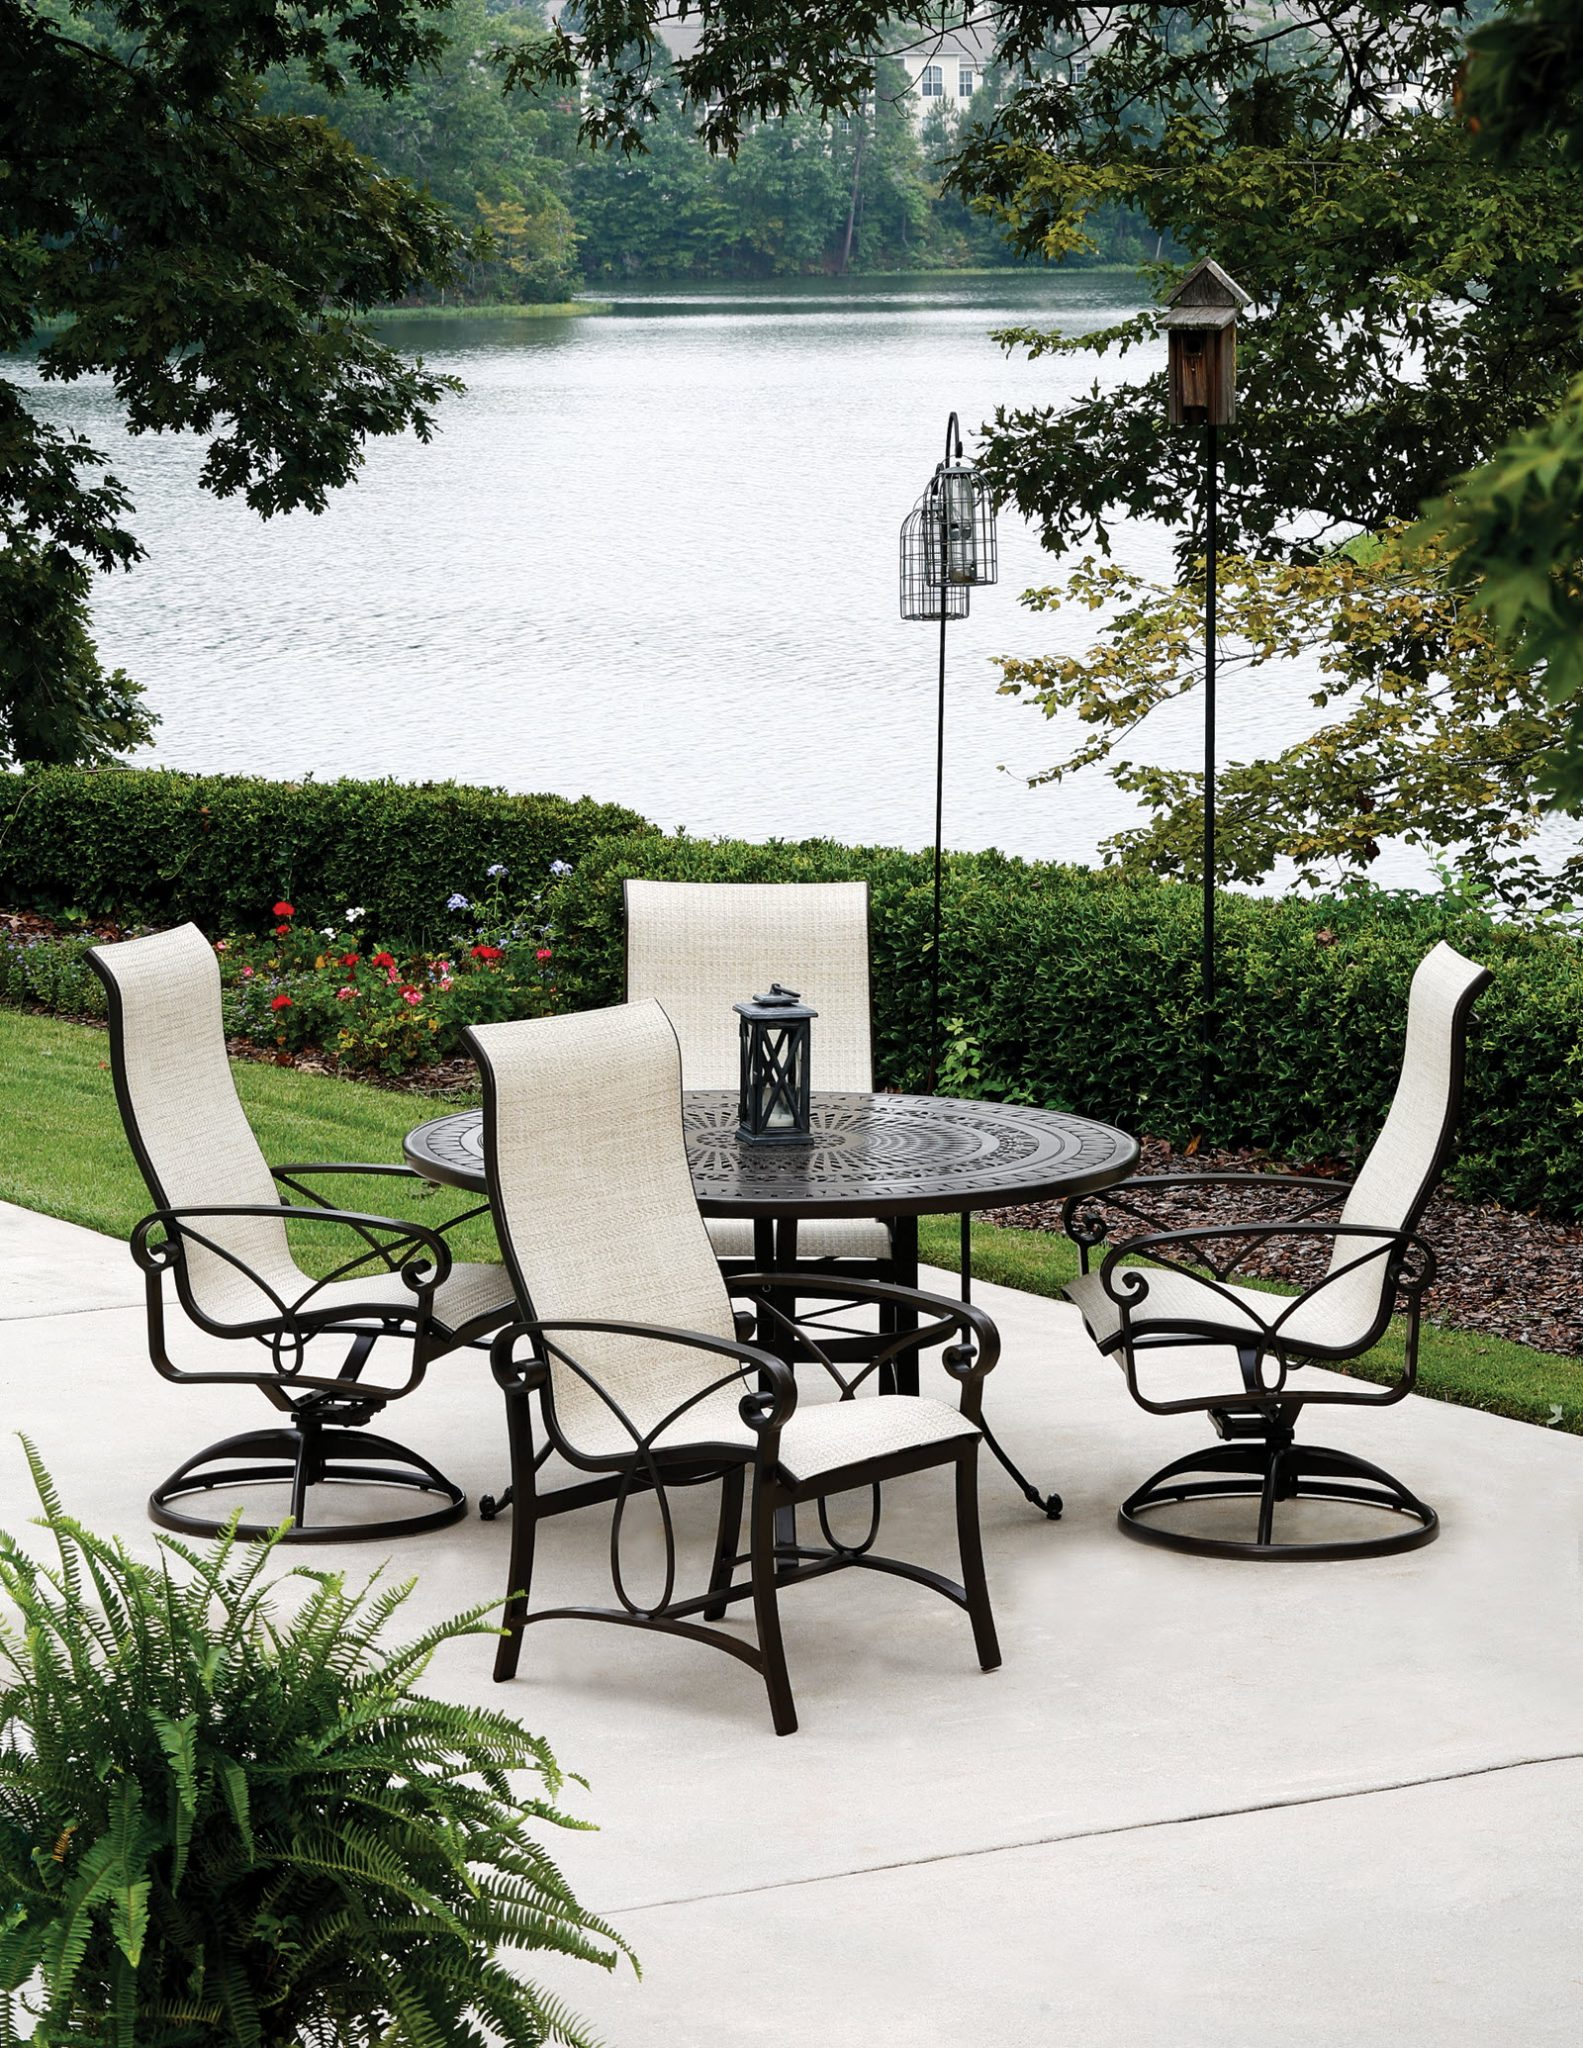 Winston Outdoor Furniture Sale Continues through March 31st